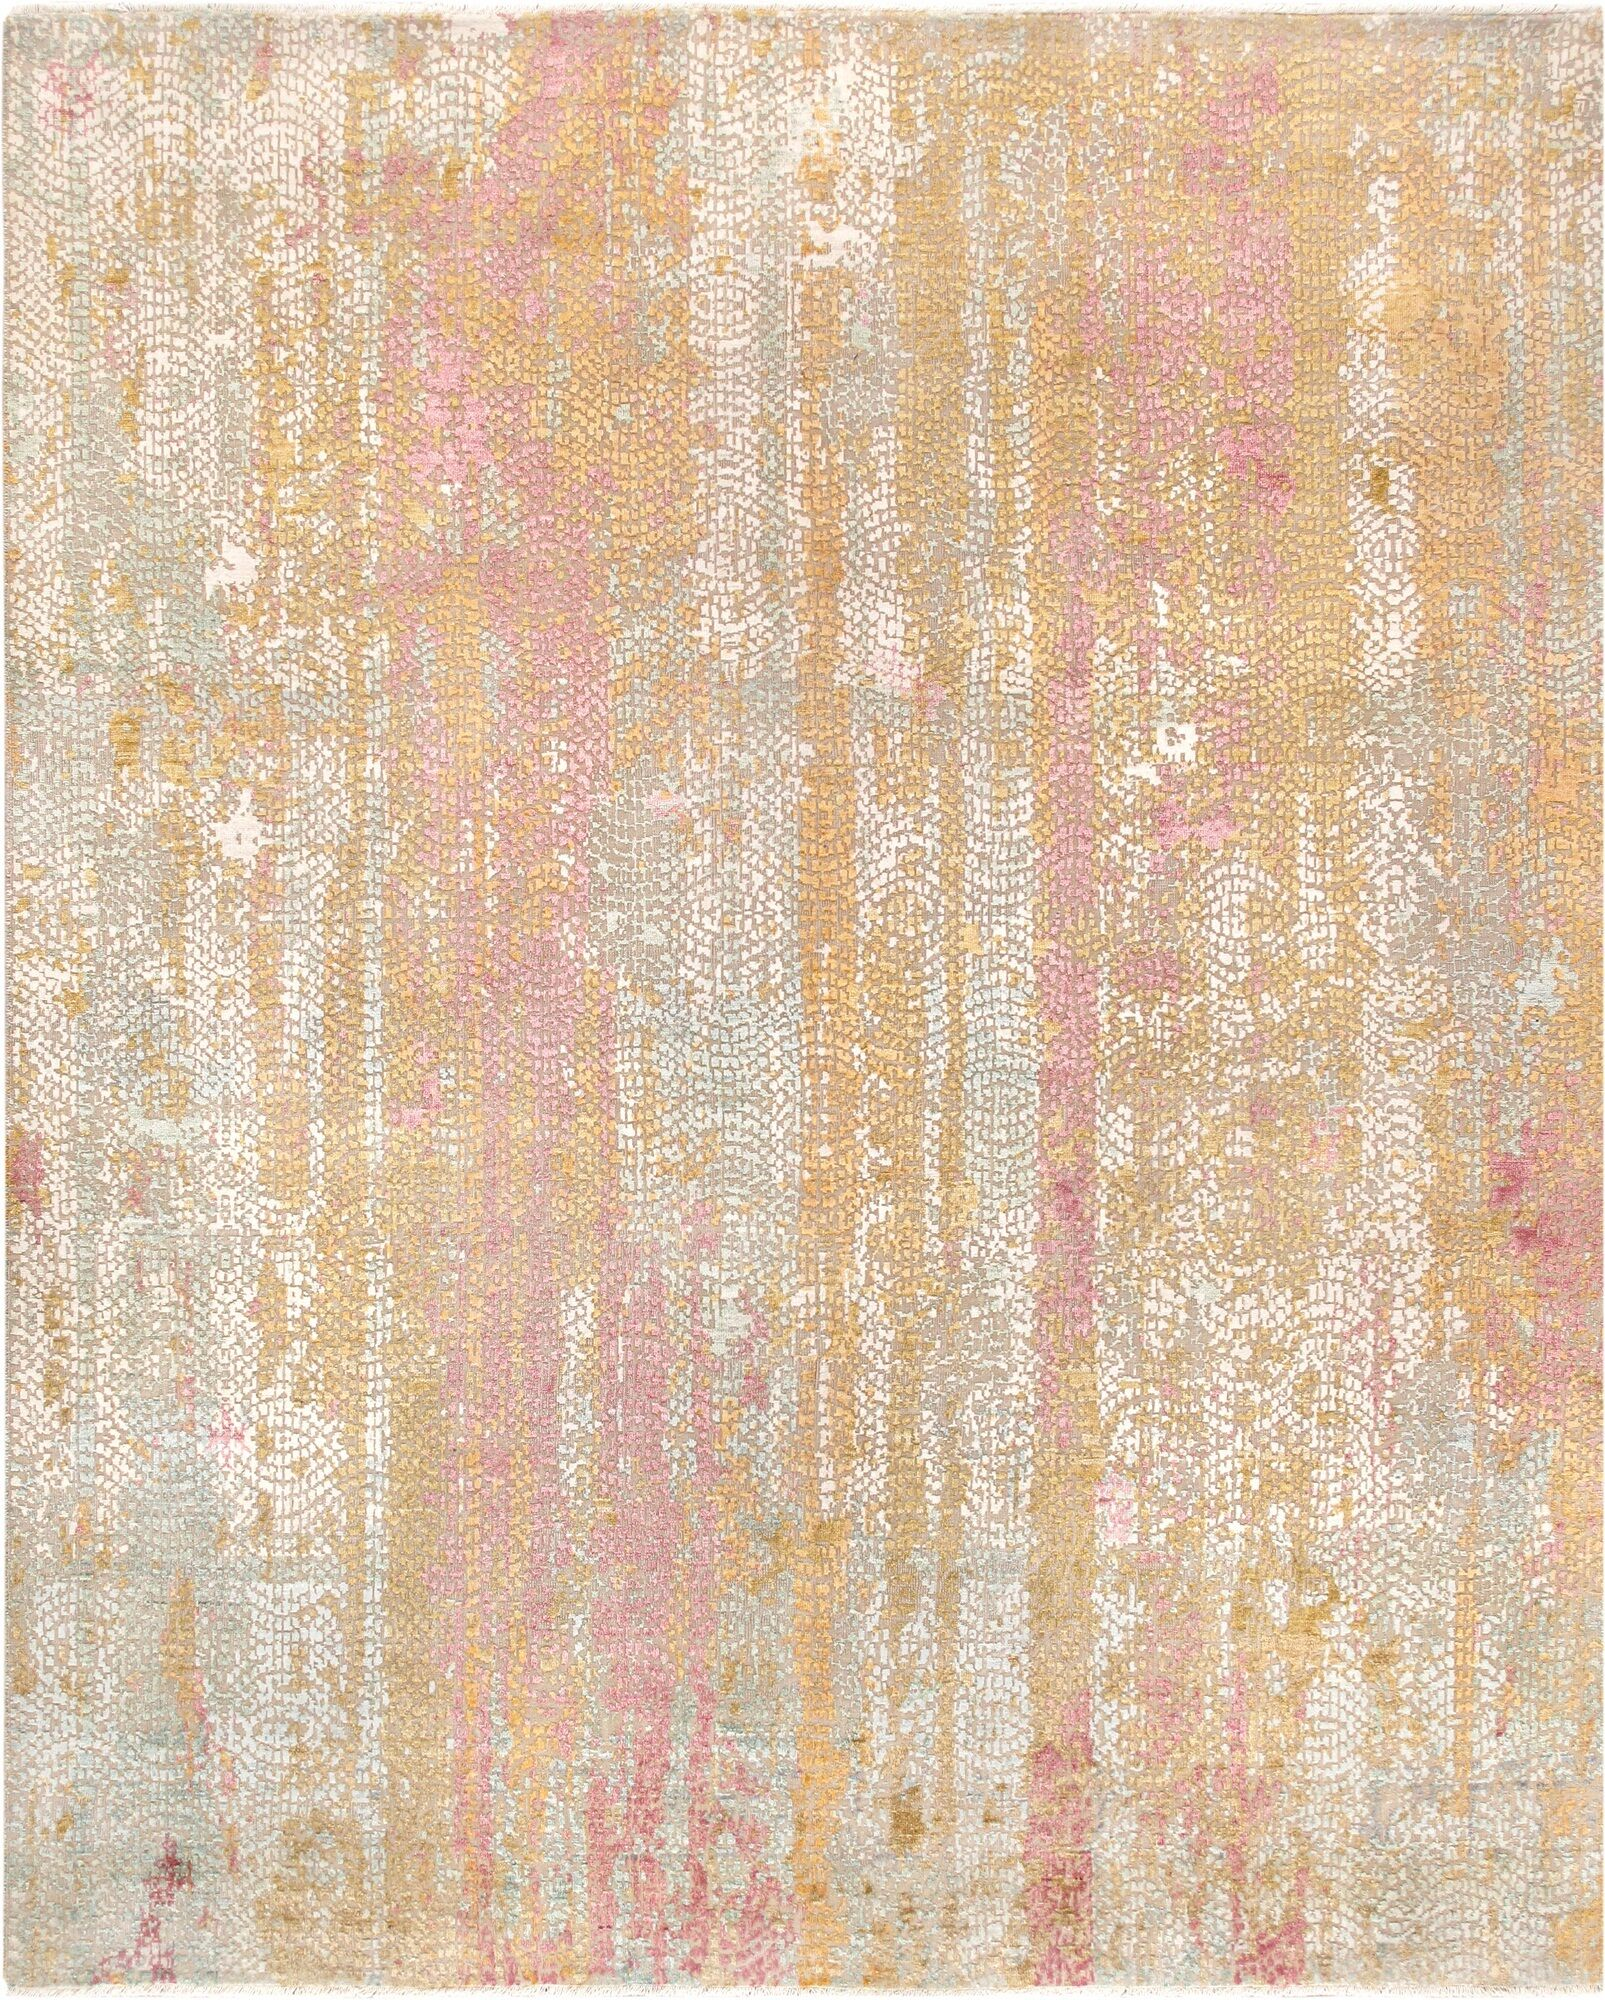 Gemstone Hand-Knotted Wool and Silk Pink/Orange Area Rug